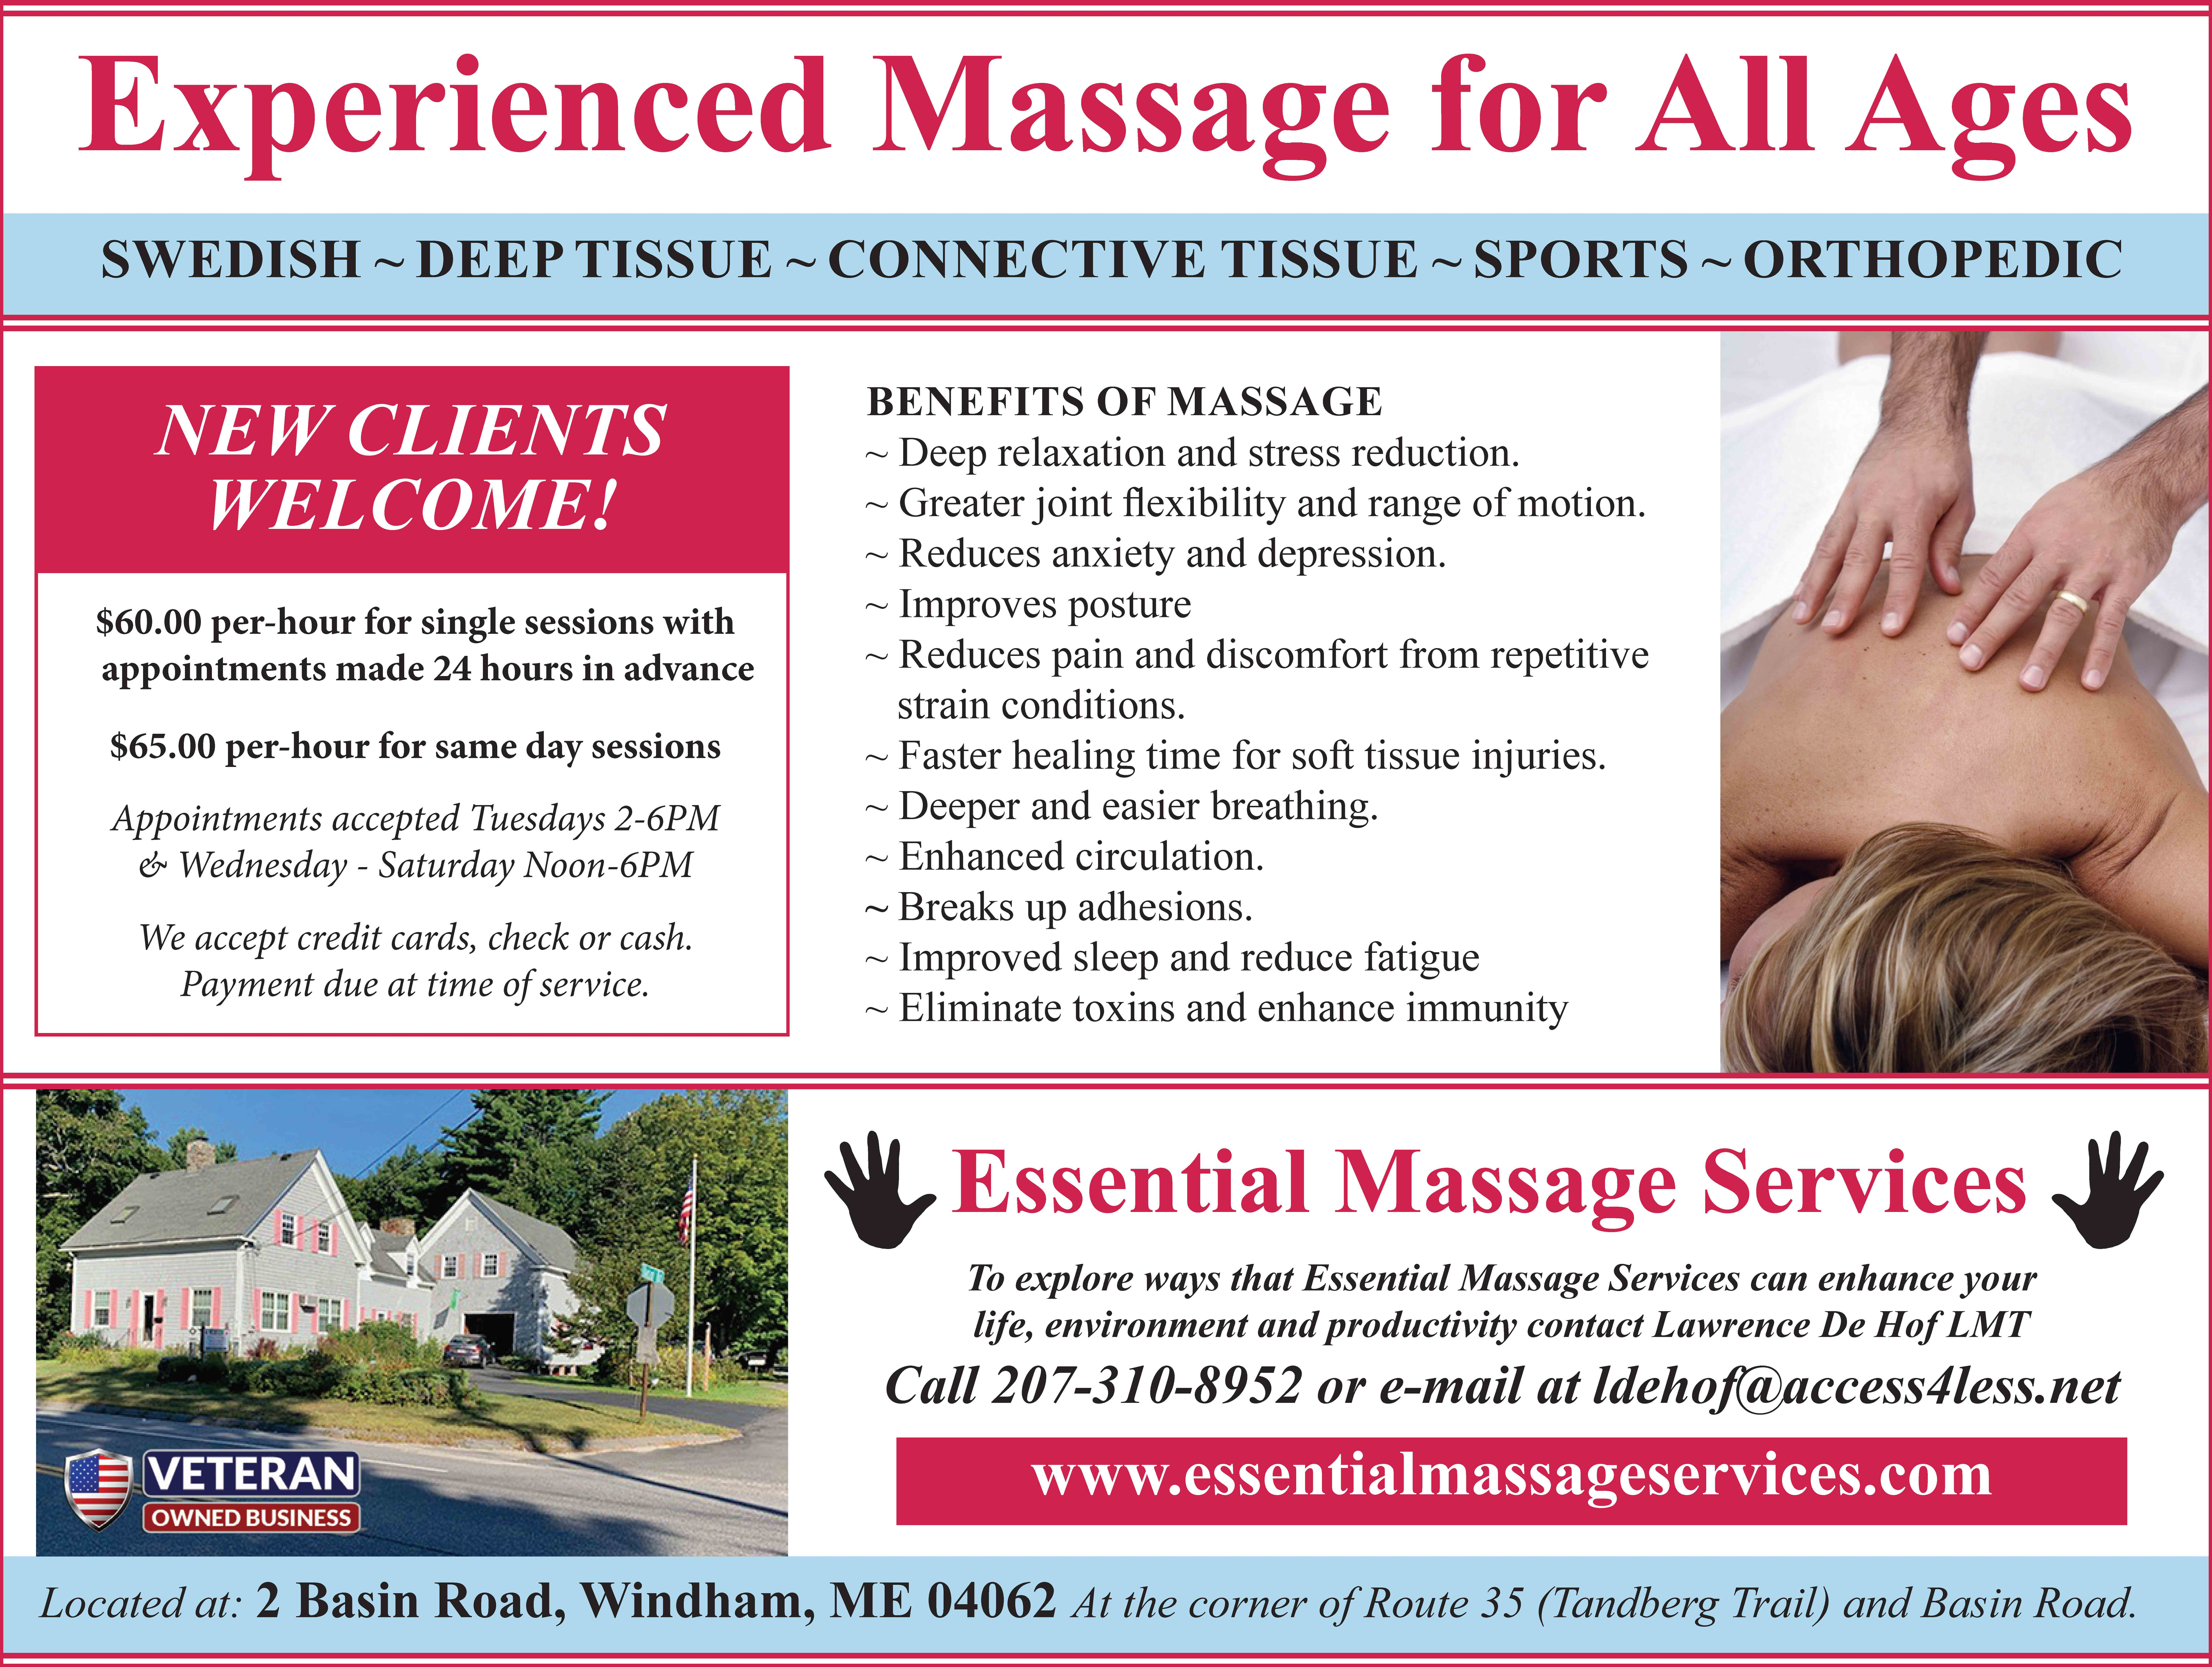 http://essentialmassageservices.com/